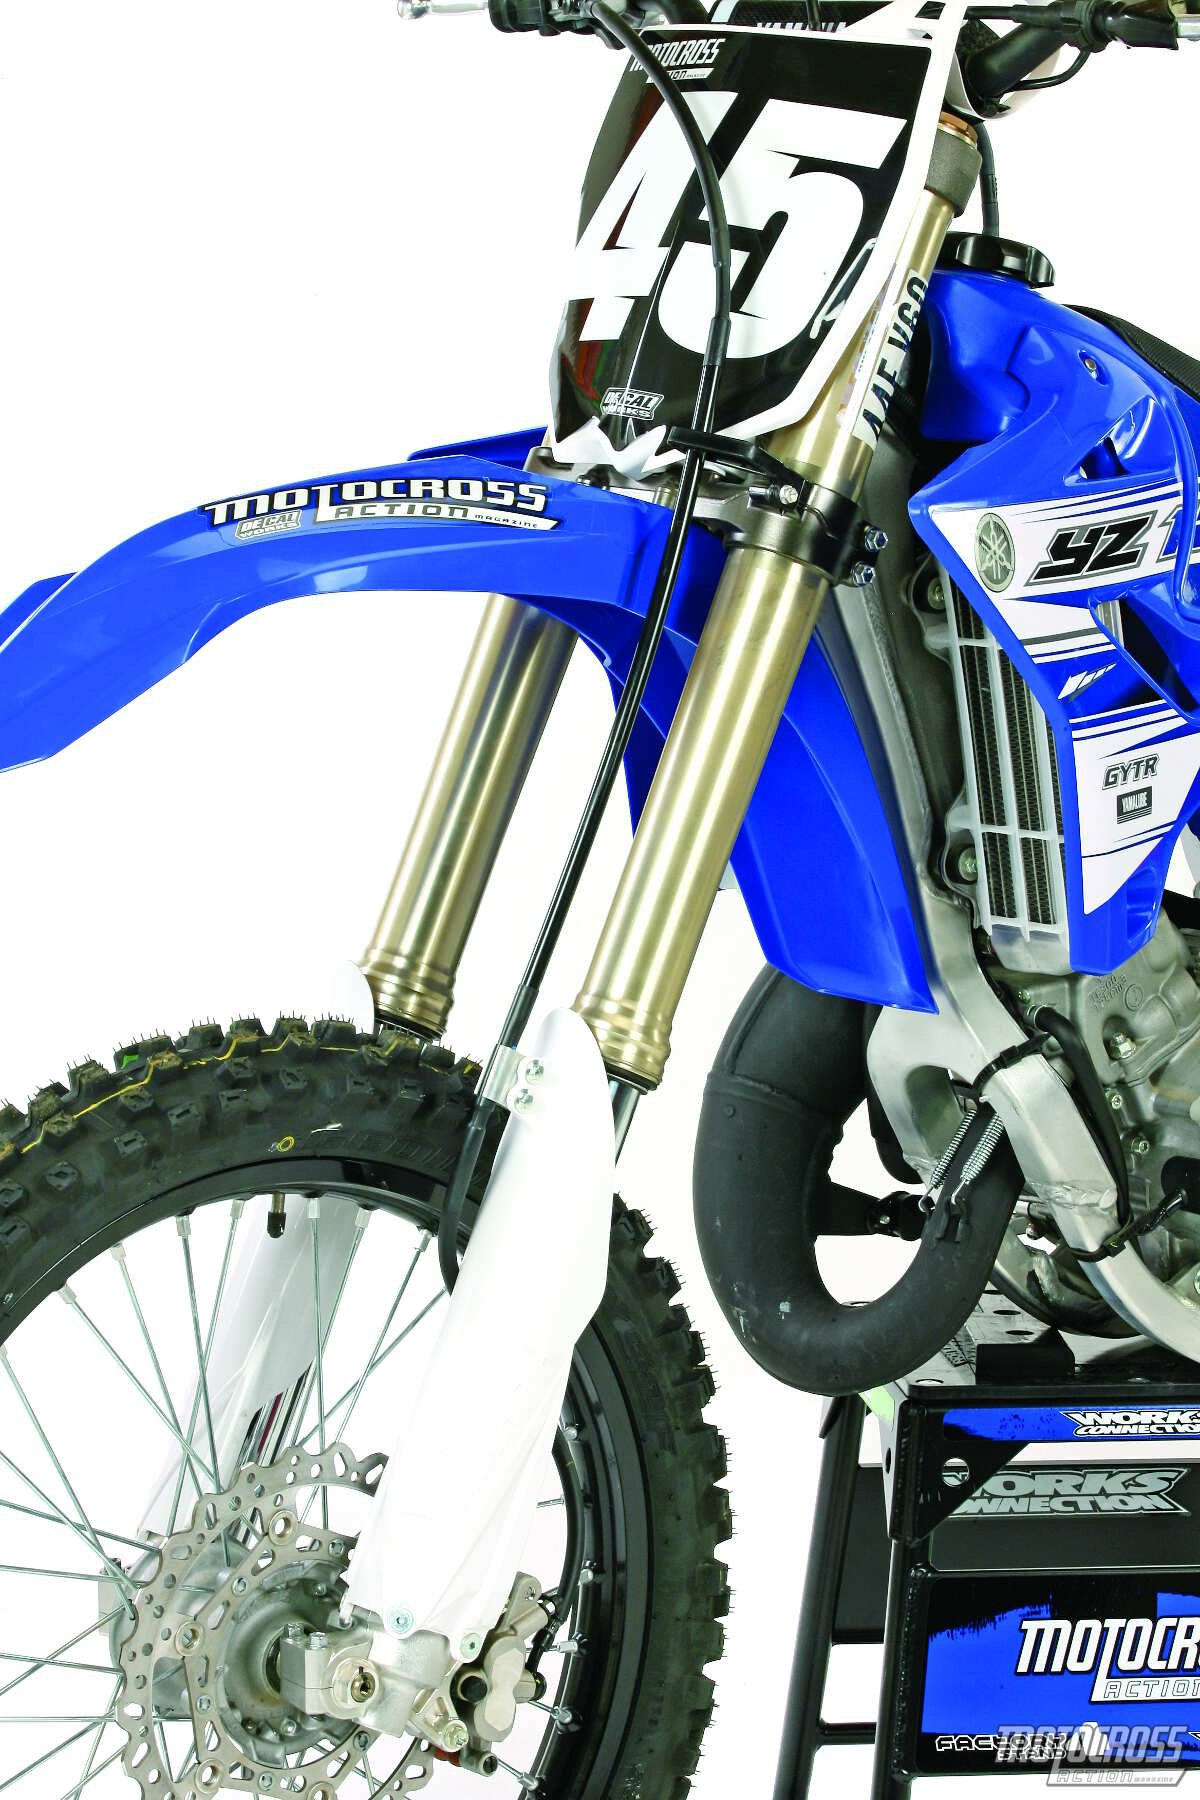 2016 YAMAHA YZ125 TWO-STROKE RACE TEST: EVERYTHING YOU NEED TO KNOW